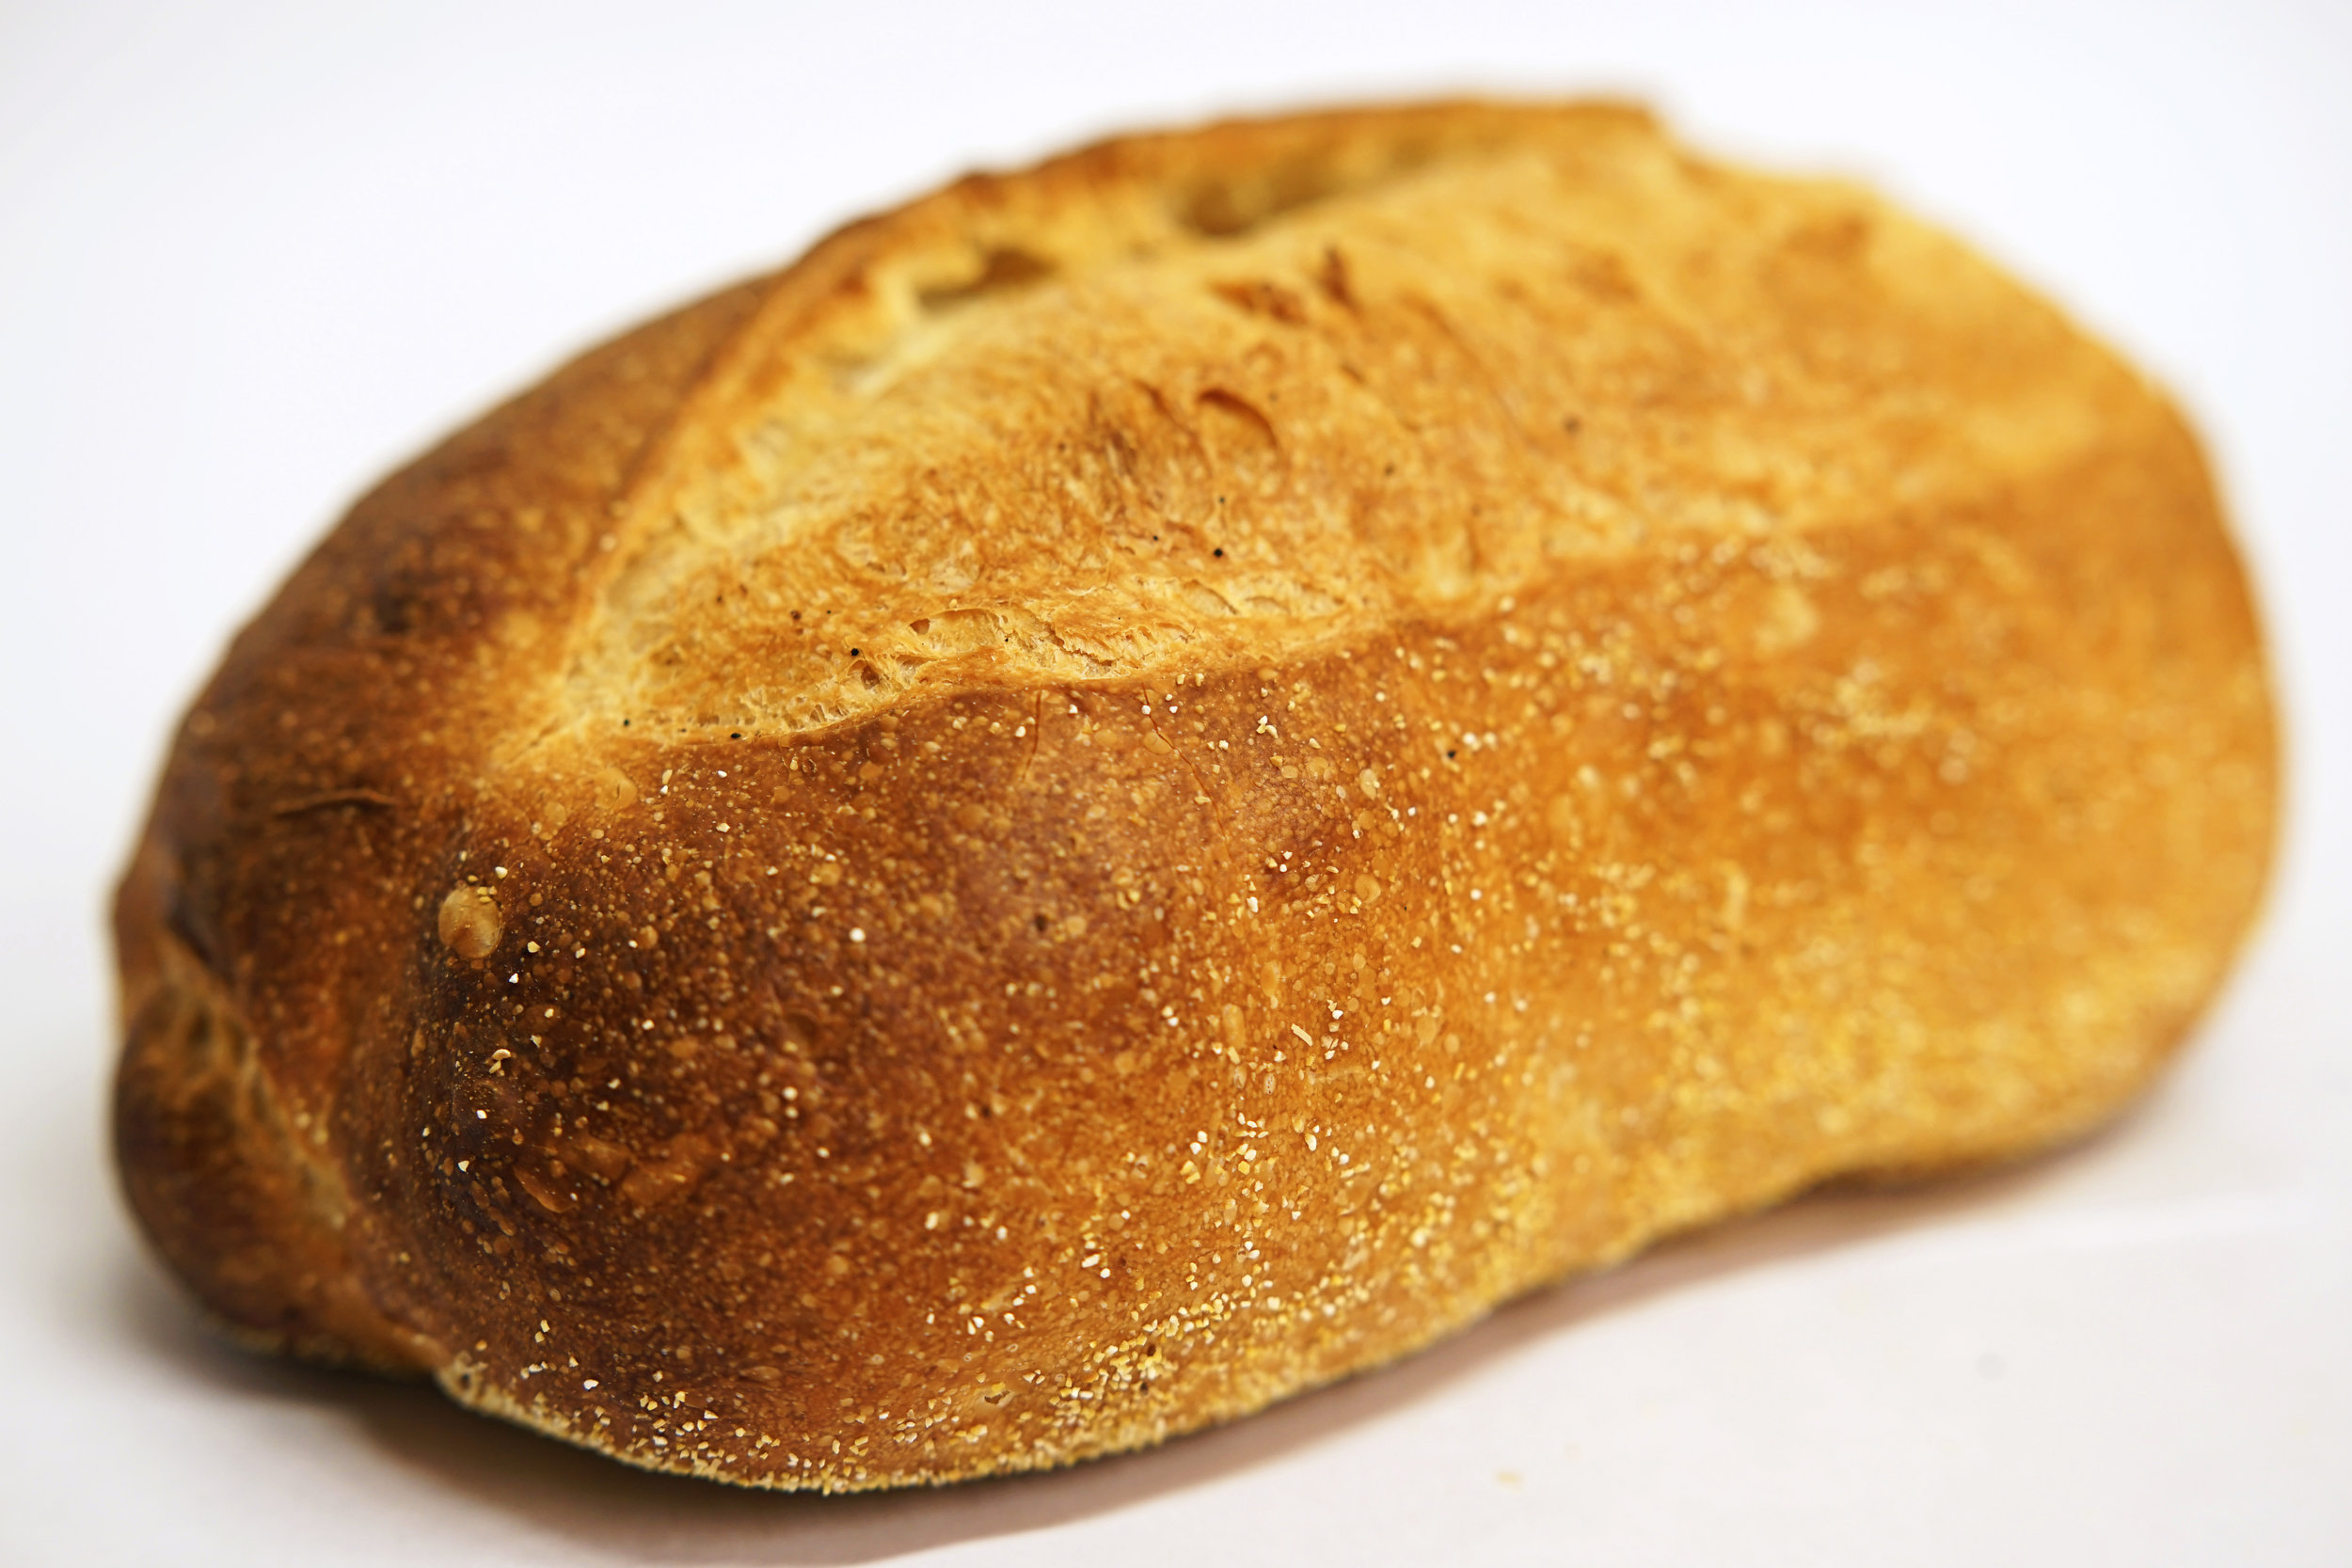 Rustique - This bread is baked